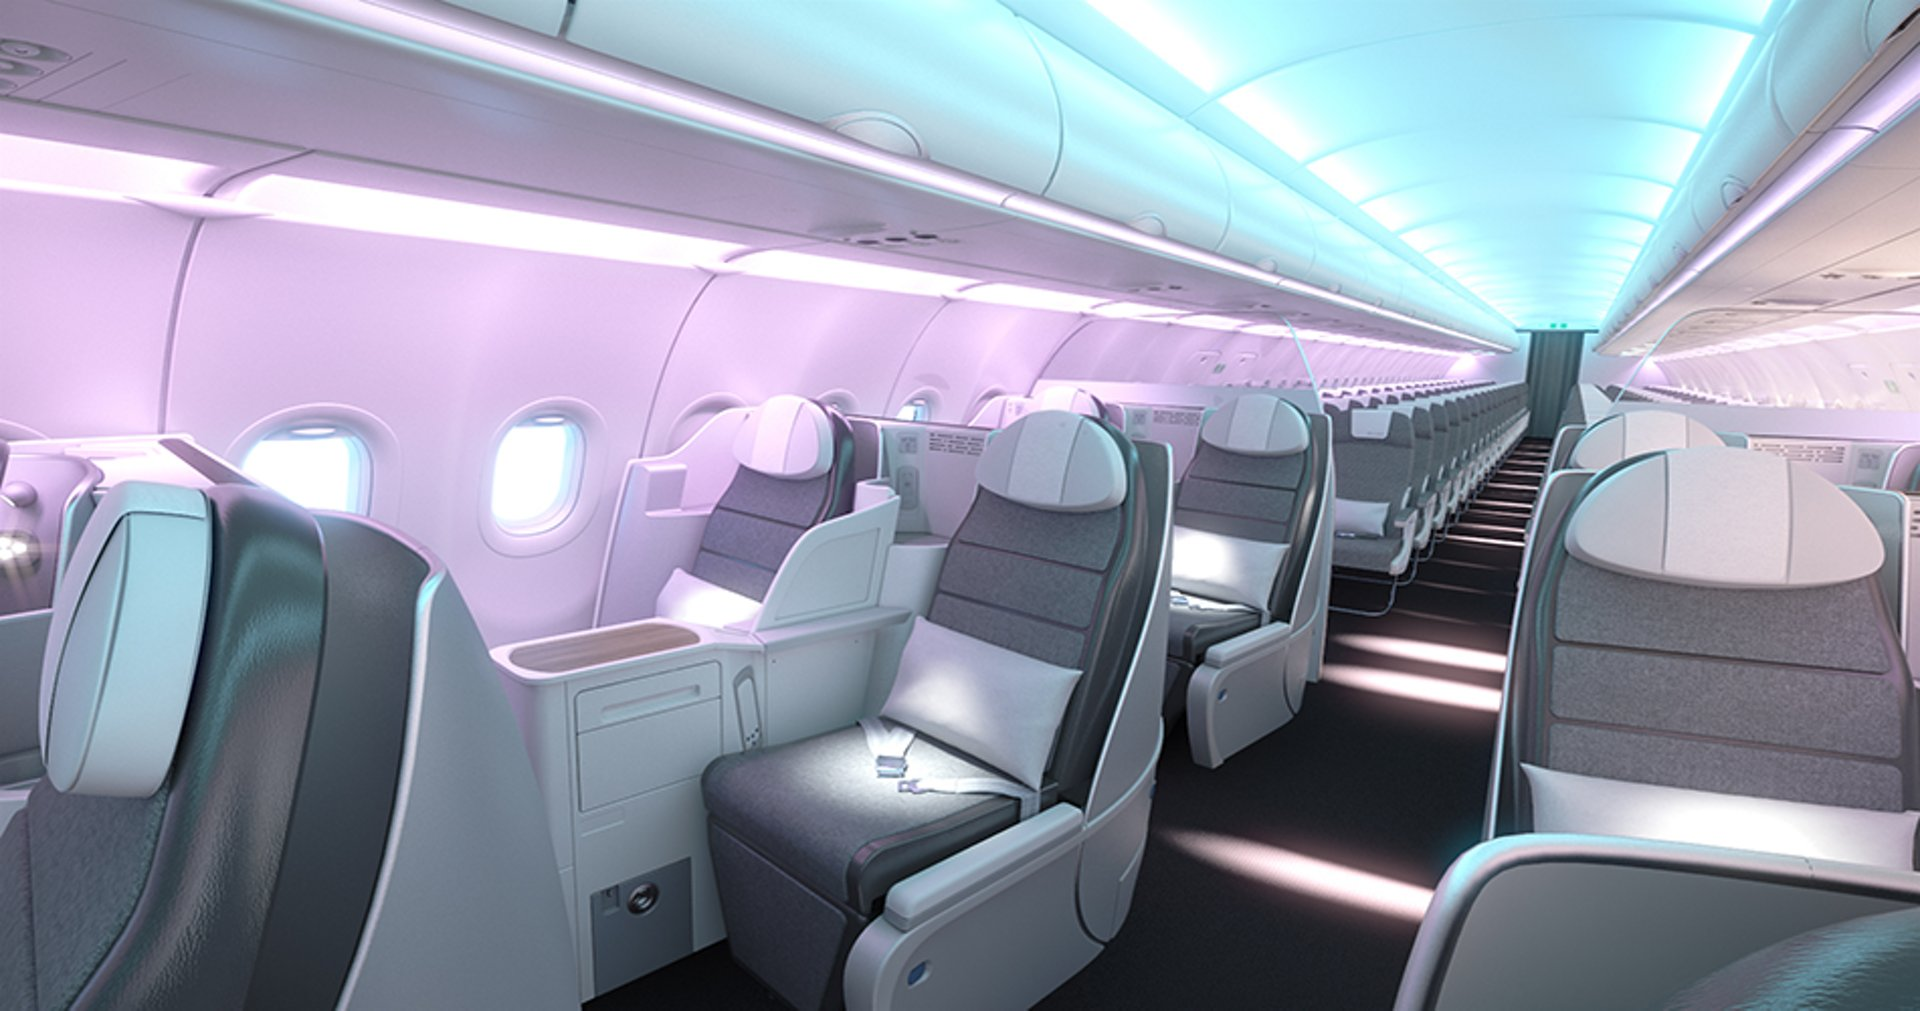 Enhancing the overall aircraft interiors perception and comfort by the passengers